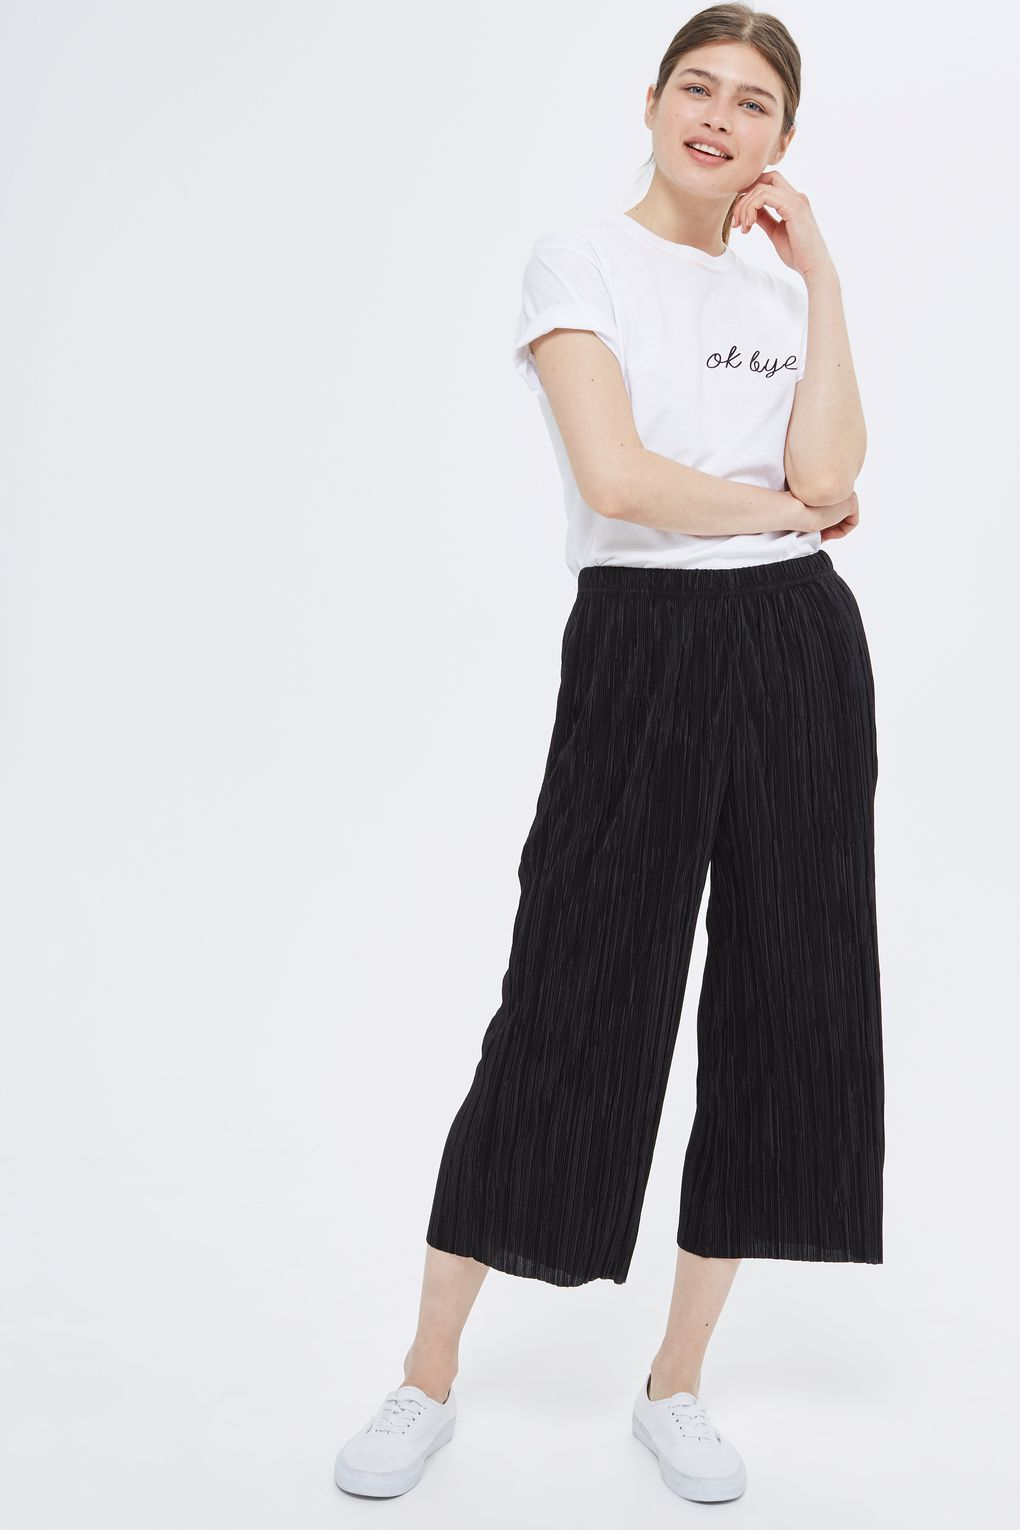 Petite Plisse Awkward Trousers Petite Outfits Petite Jumpsuit